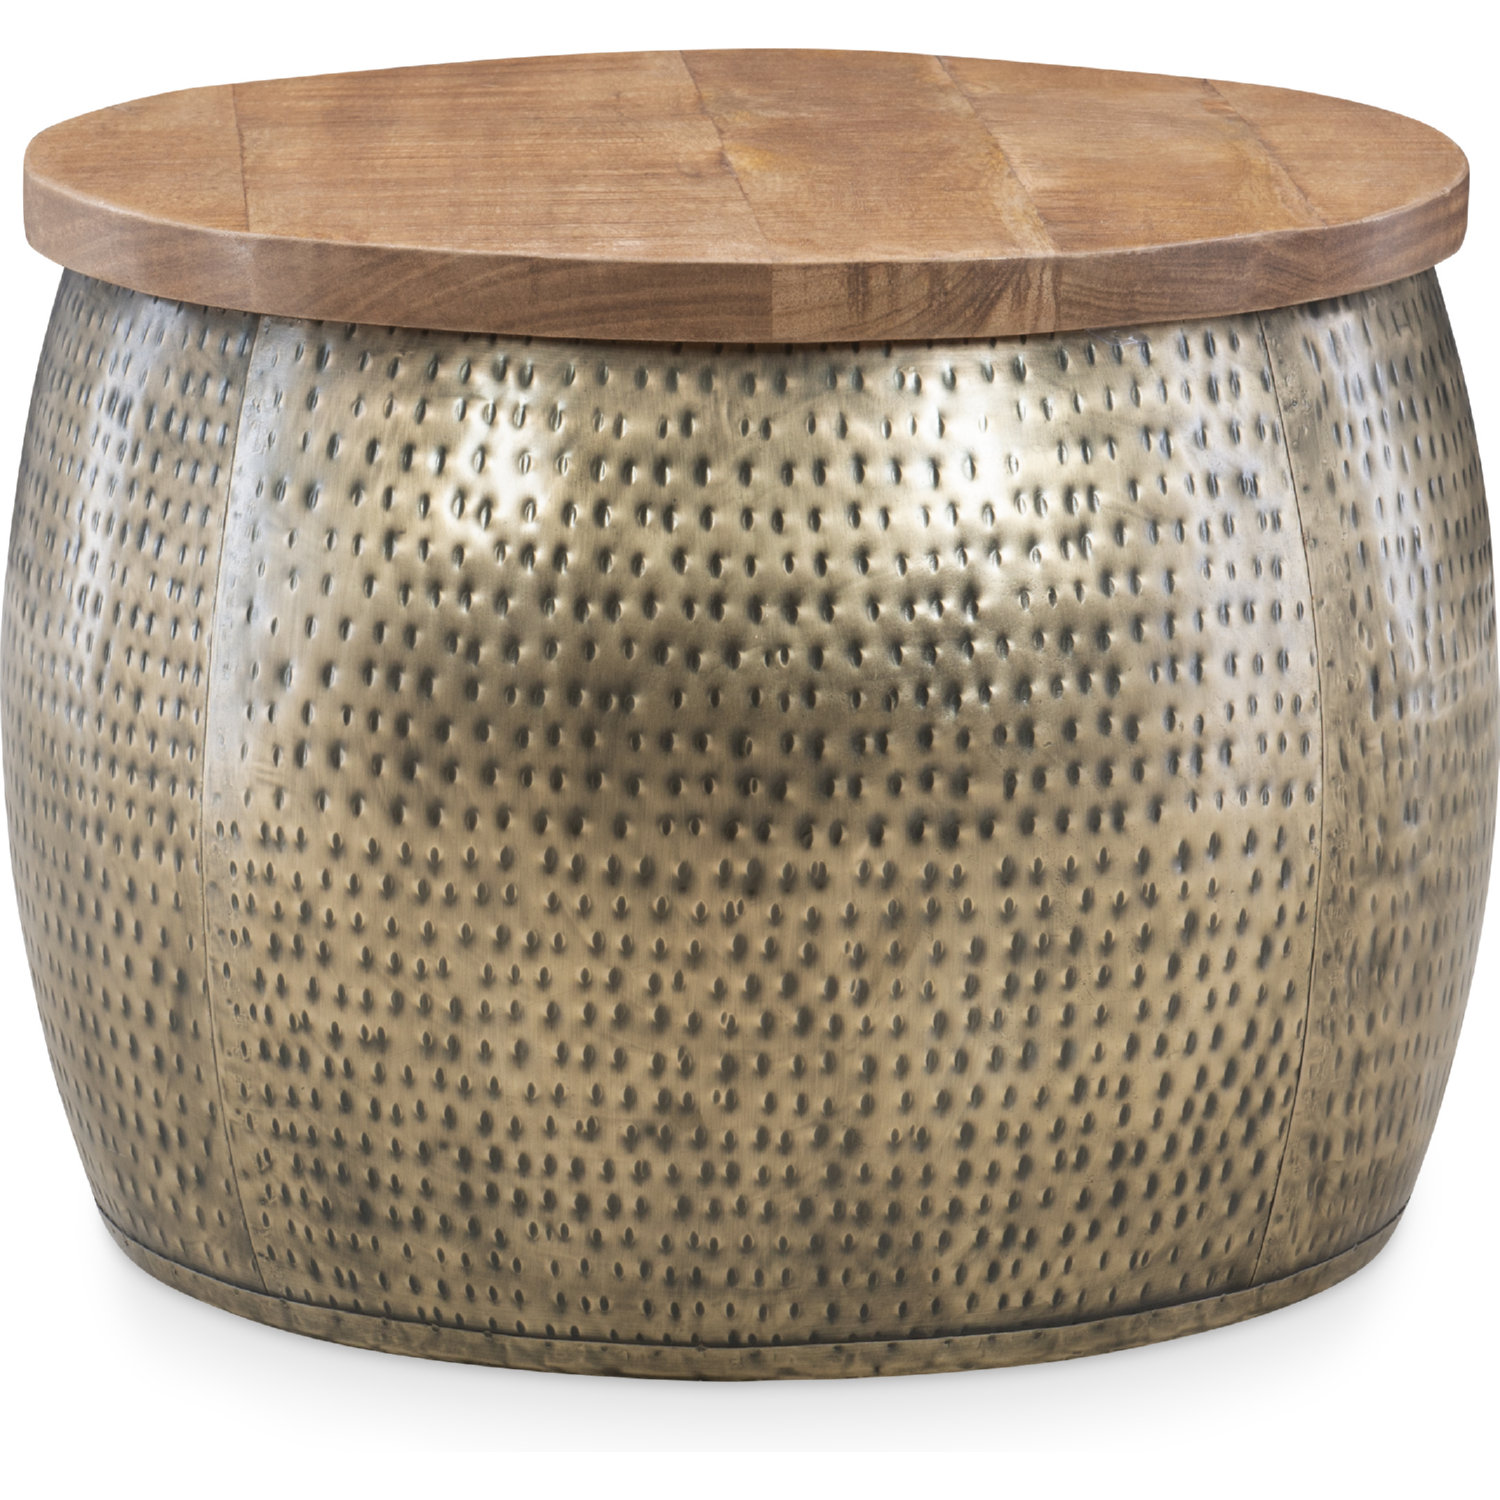 Powell D1241a19g Royce Drum Coffee Table W Storage In Gold Wood